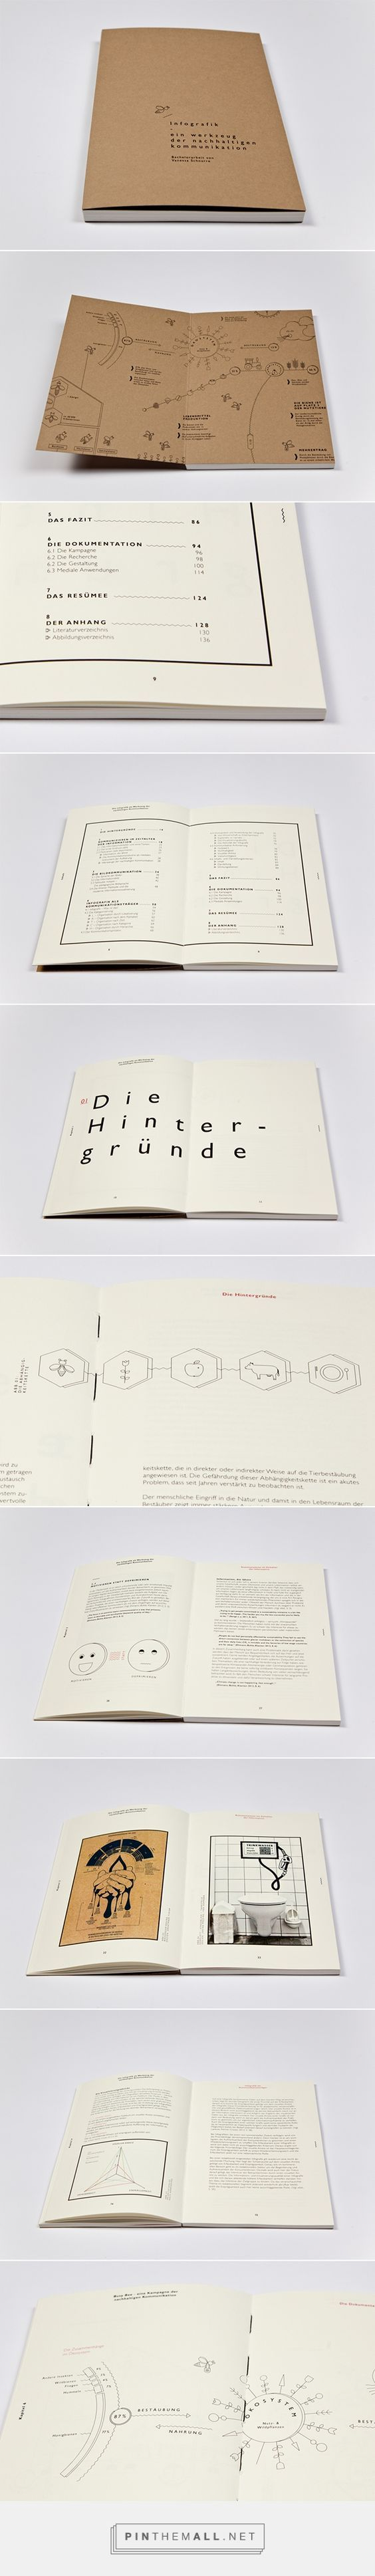 Information graphics thesis by Vanessa Schnurre: